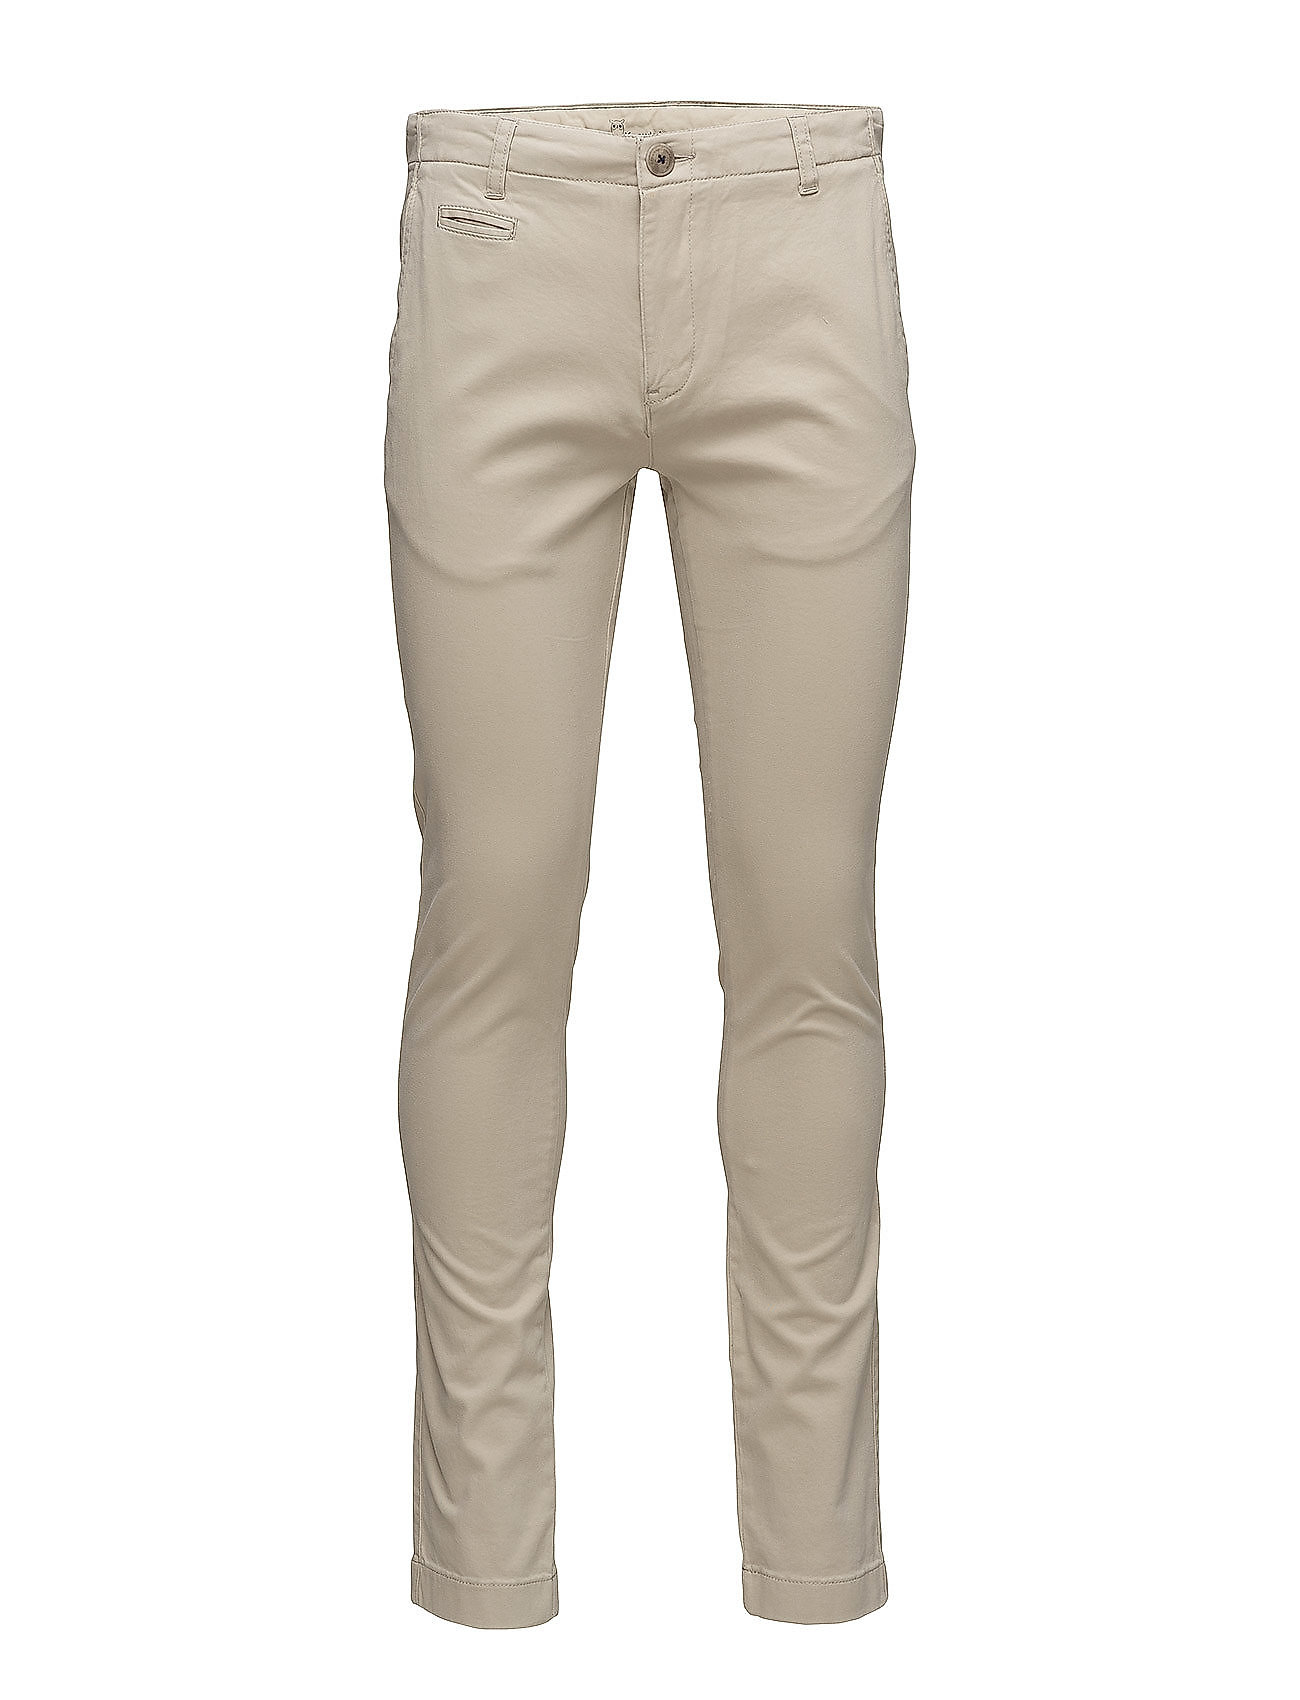 Knowledge Cotton Apparel JOE chino pant - LIGHT FEATHER GRAY